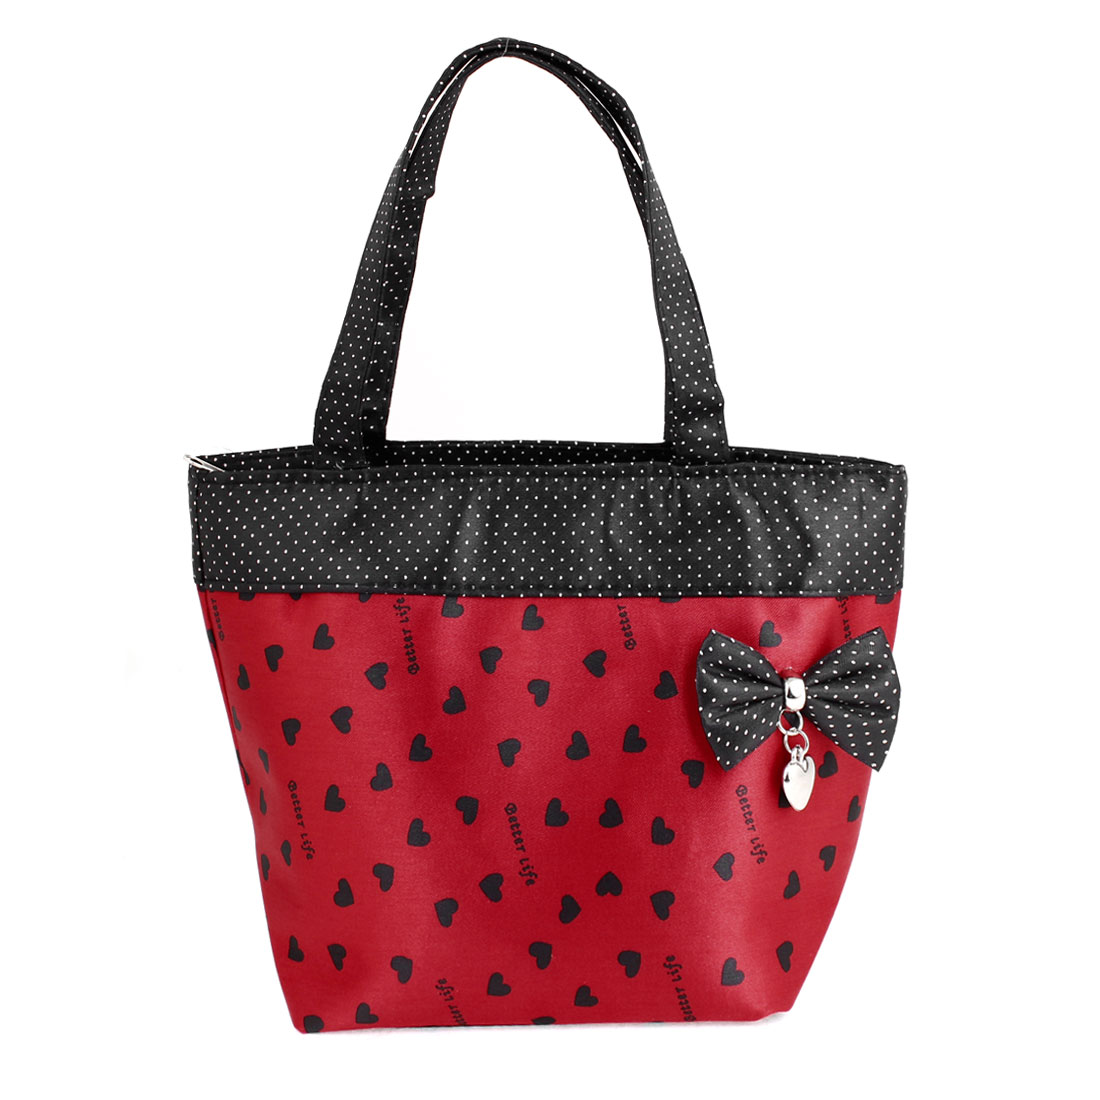 Red Black Portable Bag Bowknot Detail Zip up Polyester Shopping Handbag